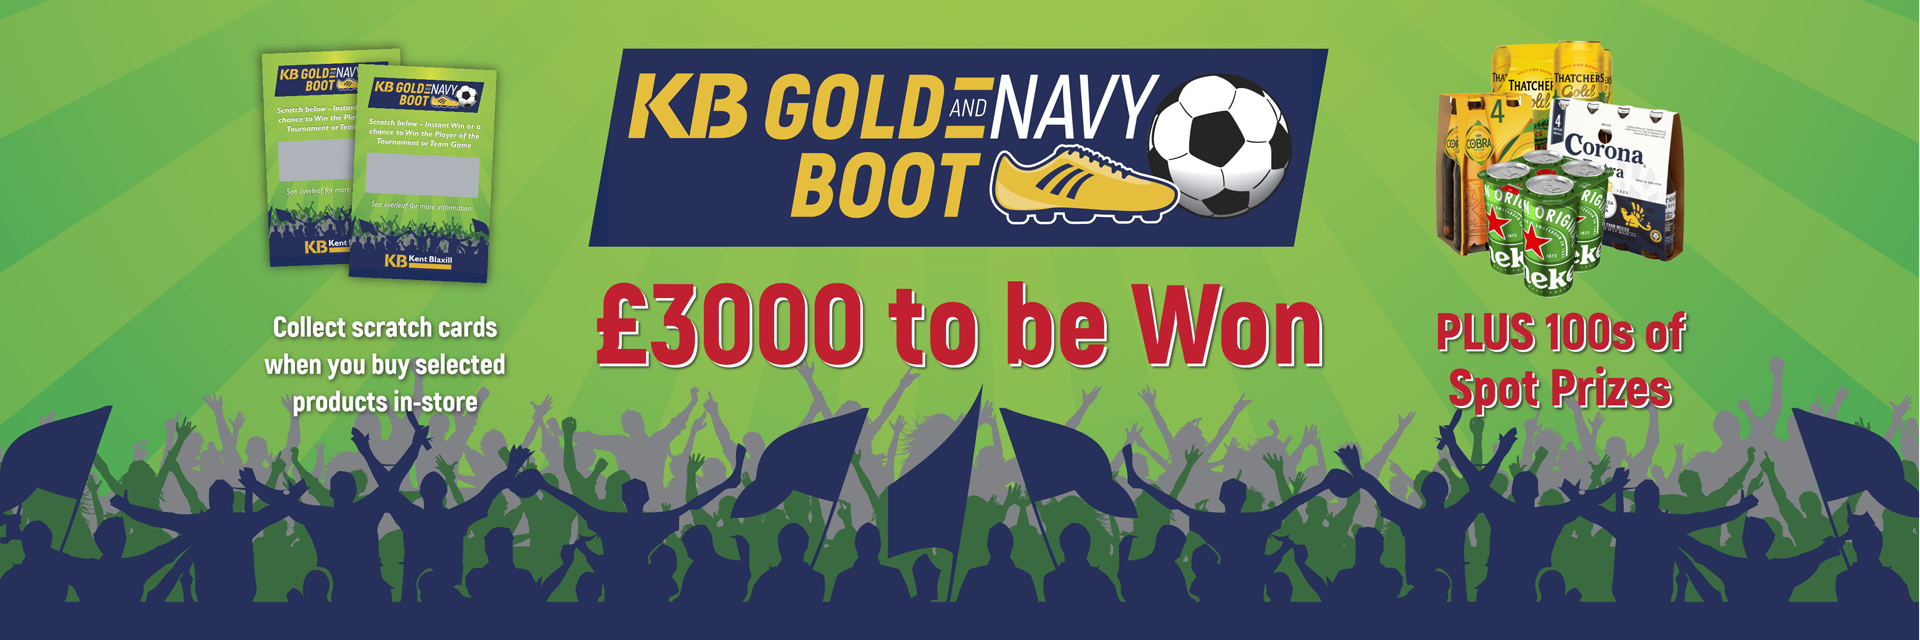 KB Gold & Navy Boot Promotion